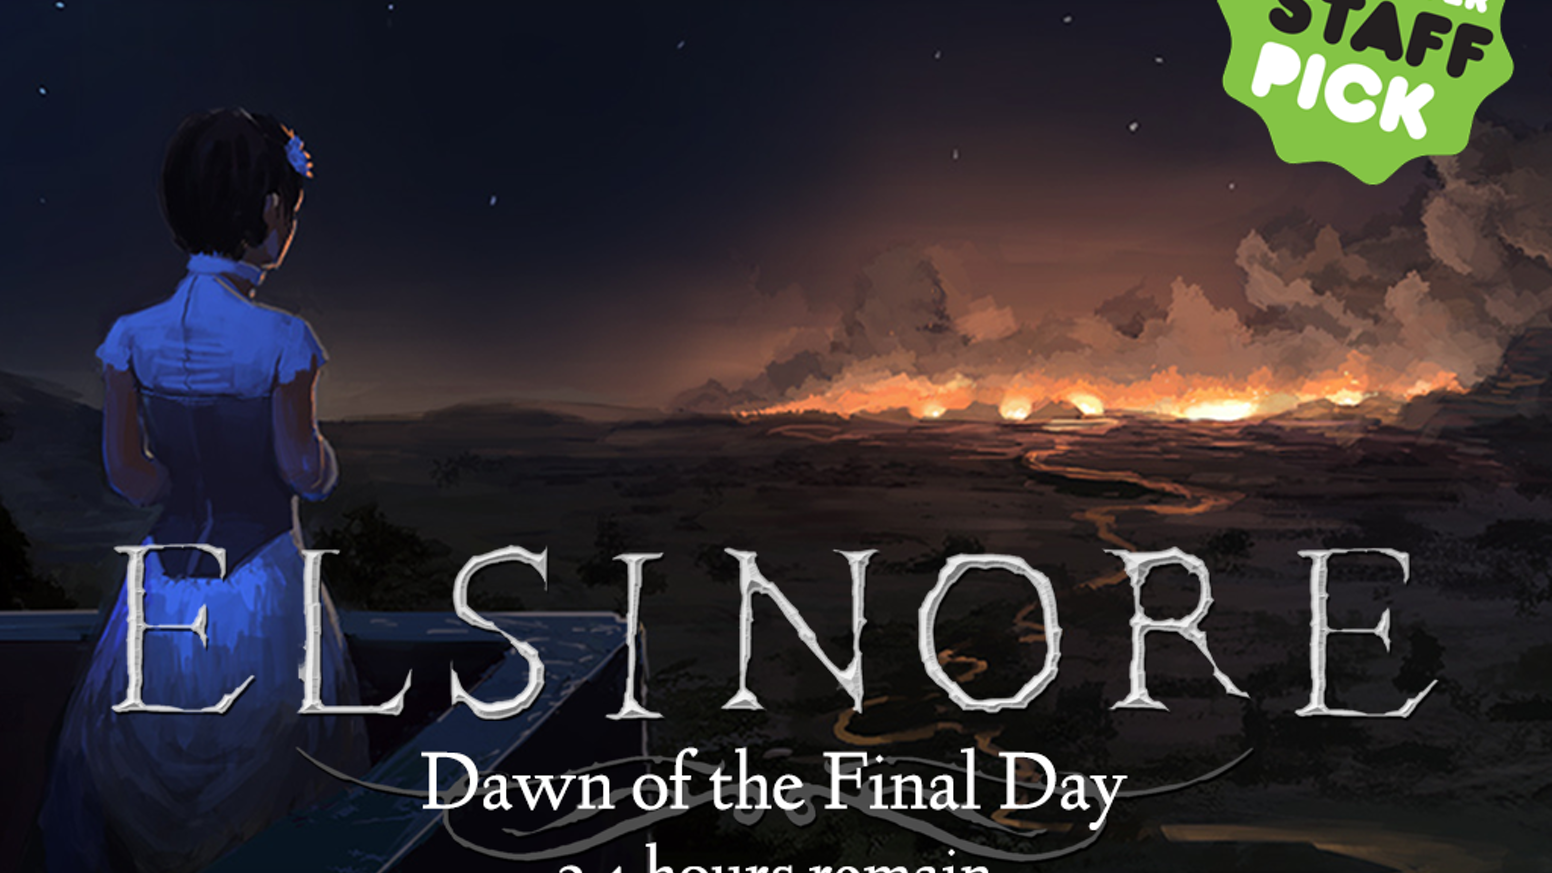 Elsinore is a time-looping narrative adventure game set in the world of Shakespeare's Hamlet.